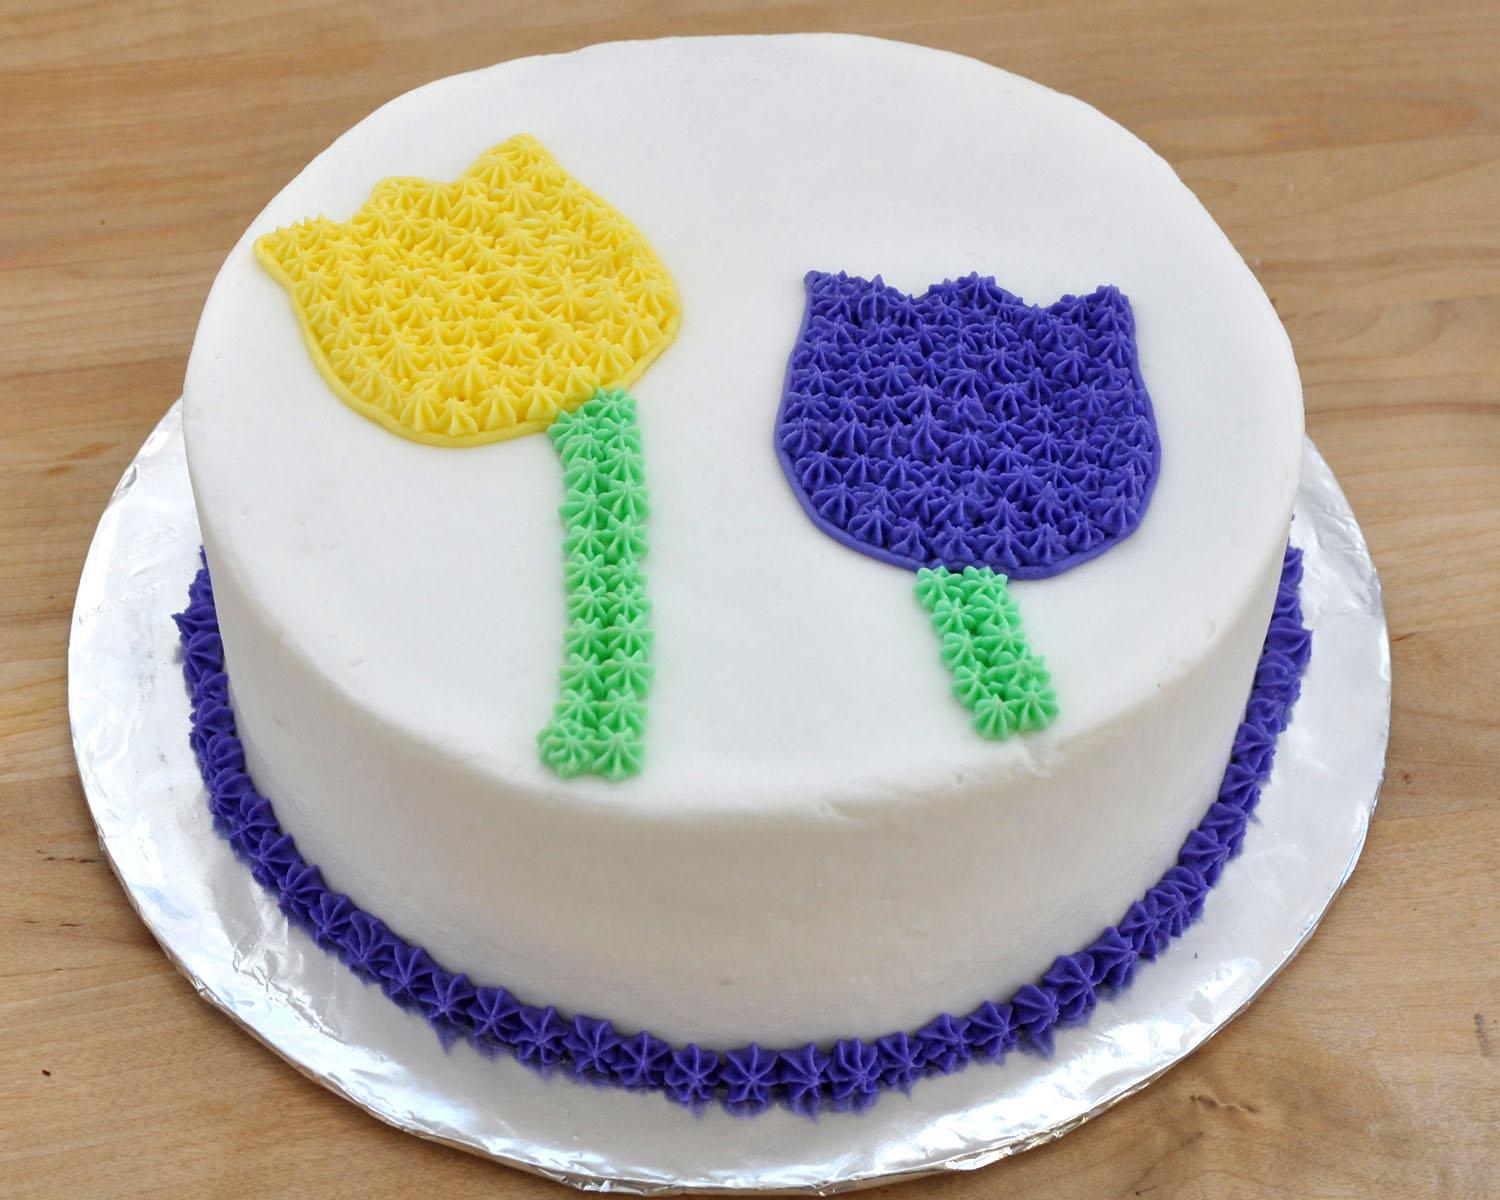 Beki Cooks Cake Blog Decorating 101